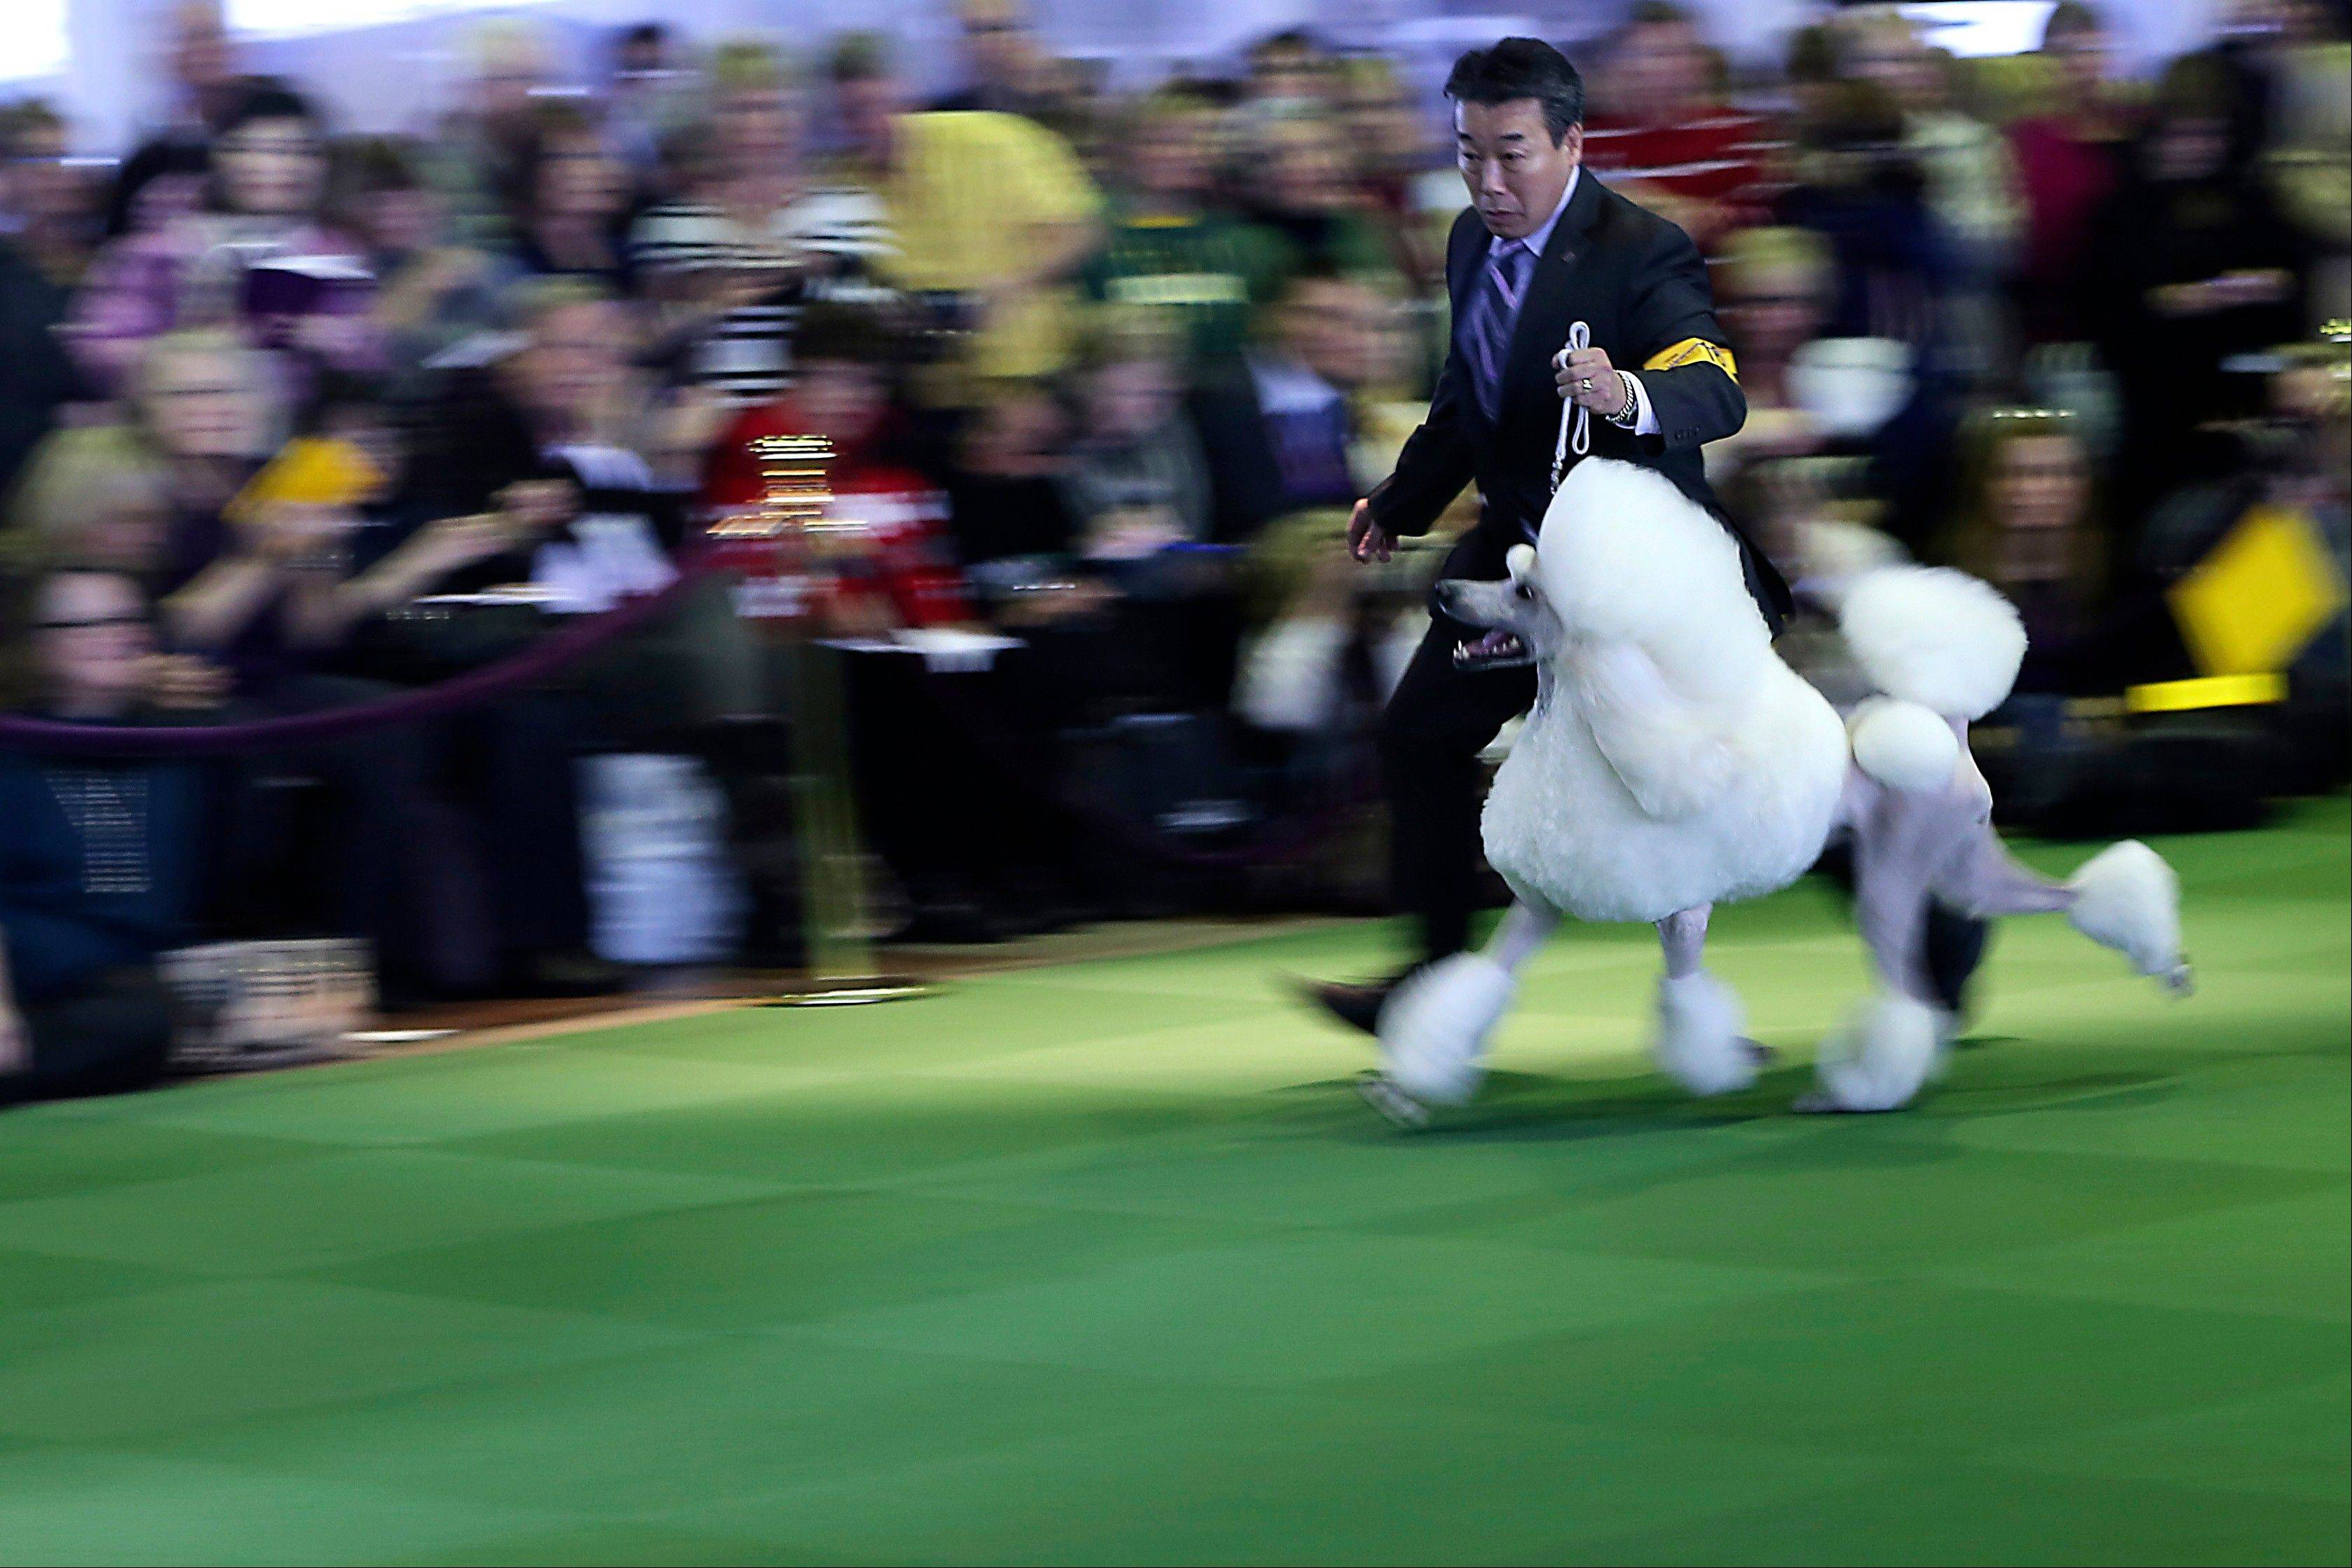 A handler shows a standard poodle in the ring during the 137th Westminster Kennel Club dog show, Monday, Feb. 11, 2013 in New York.